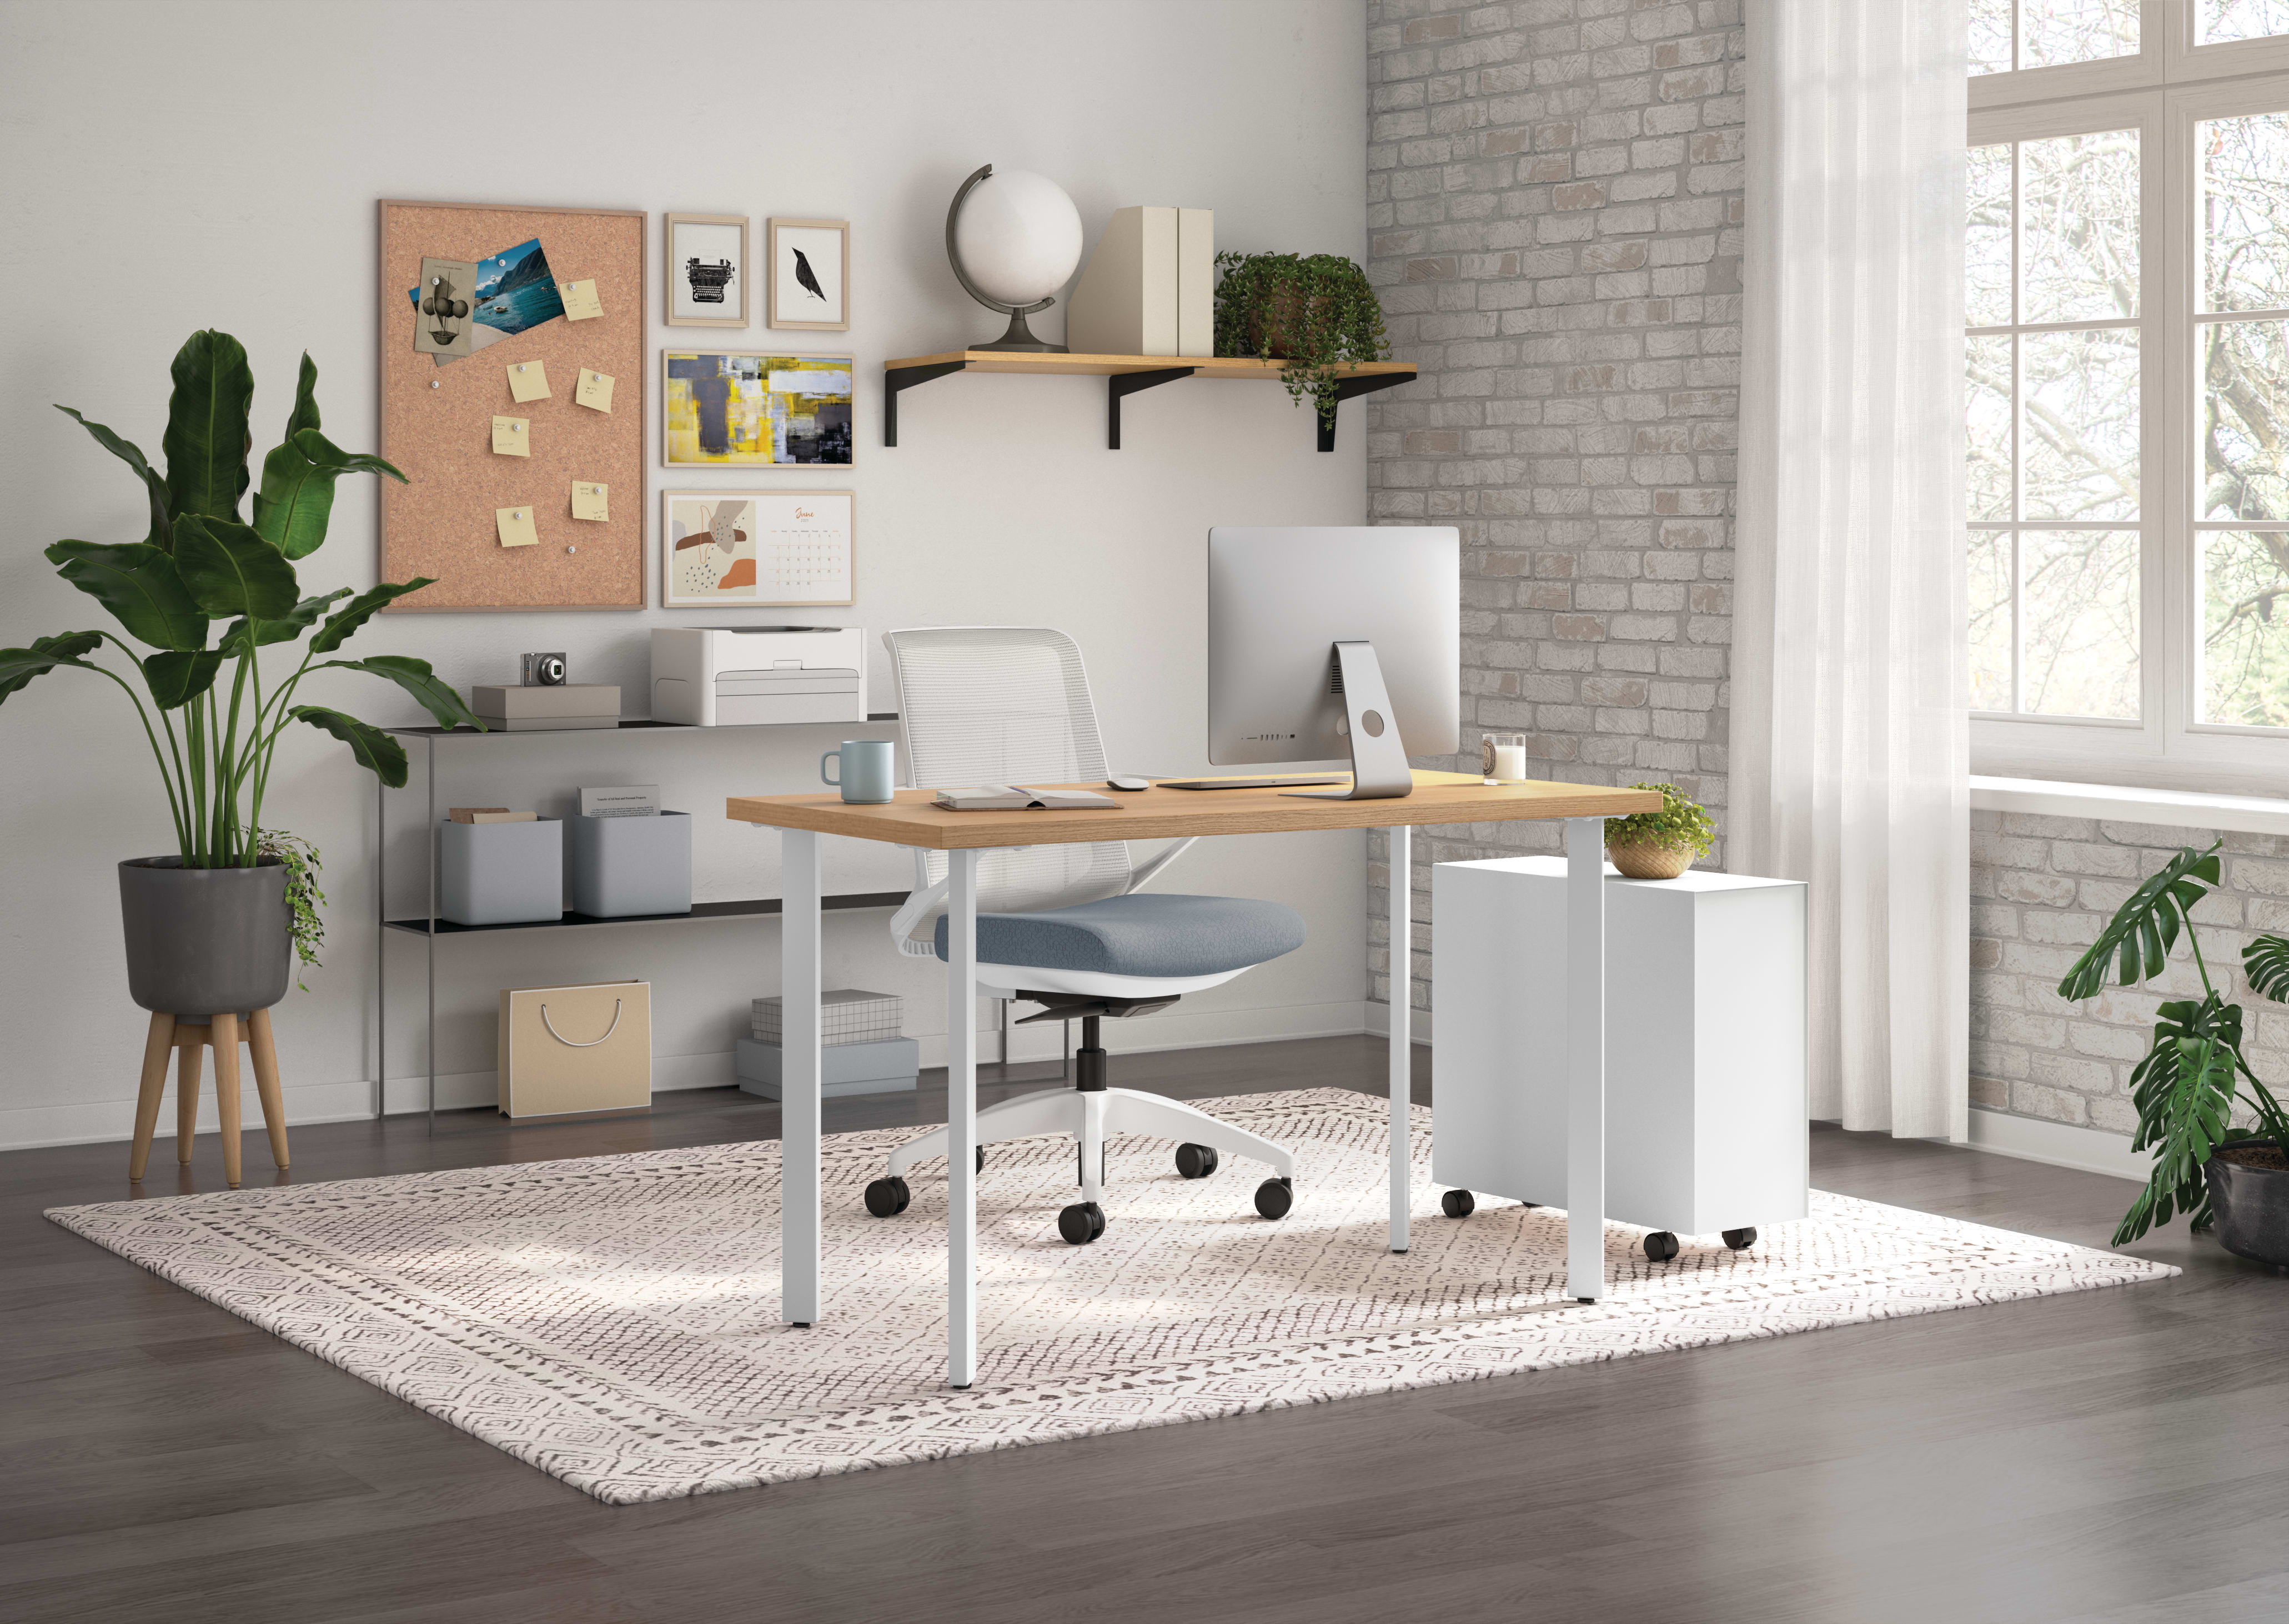 Cliq Task Chair with Coze Table Desk and Fuse Slim Mobile Pedestal